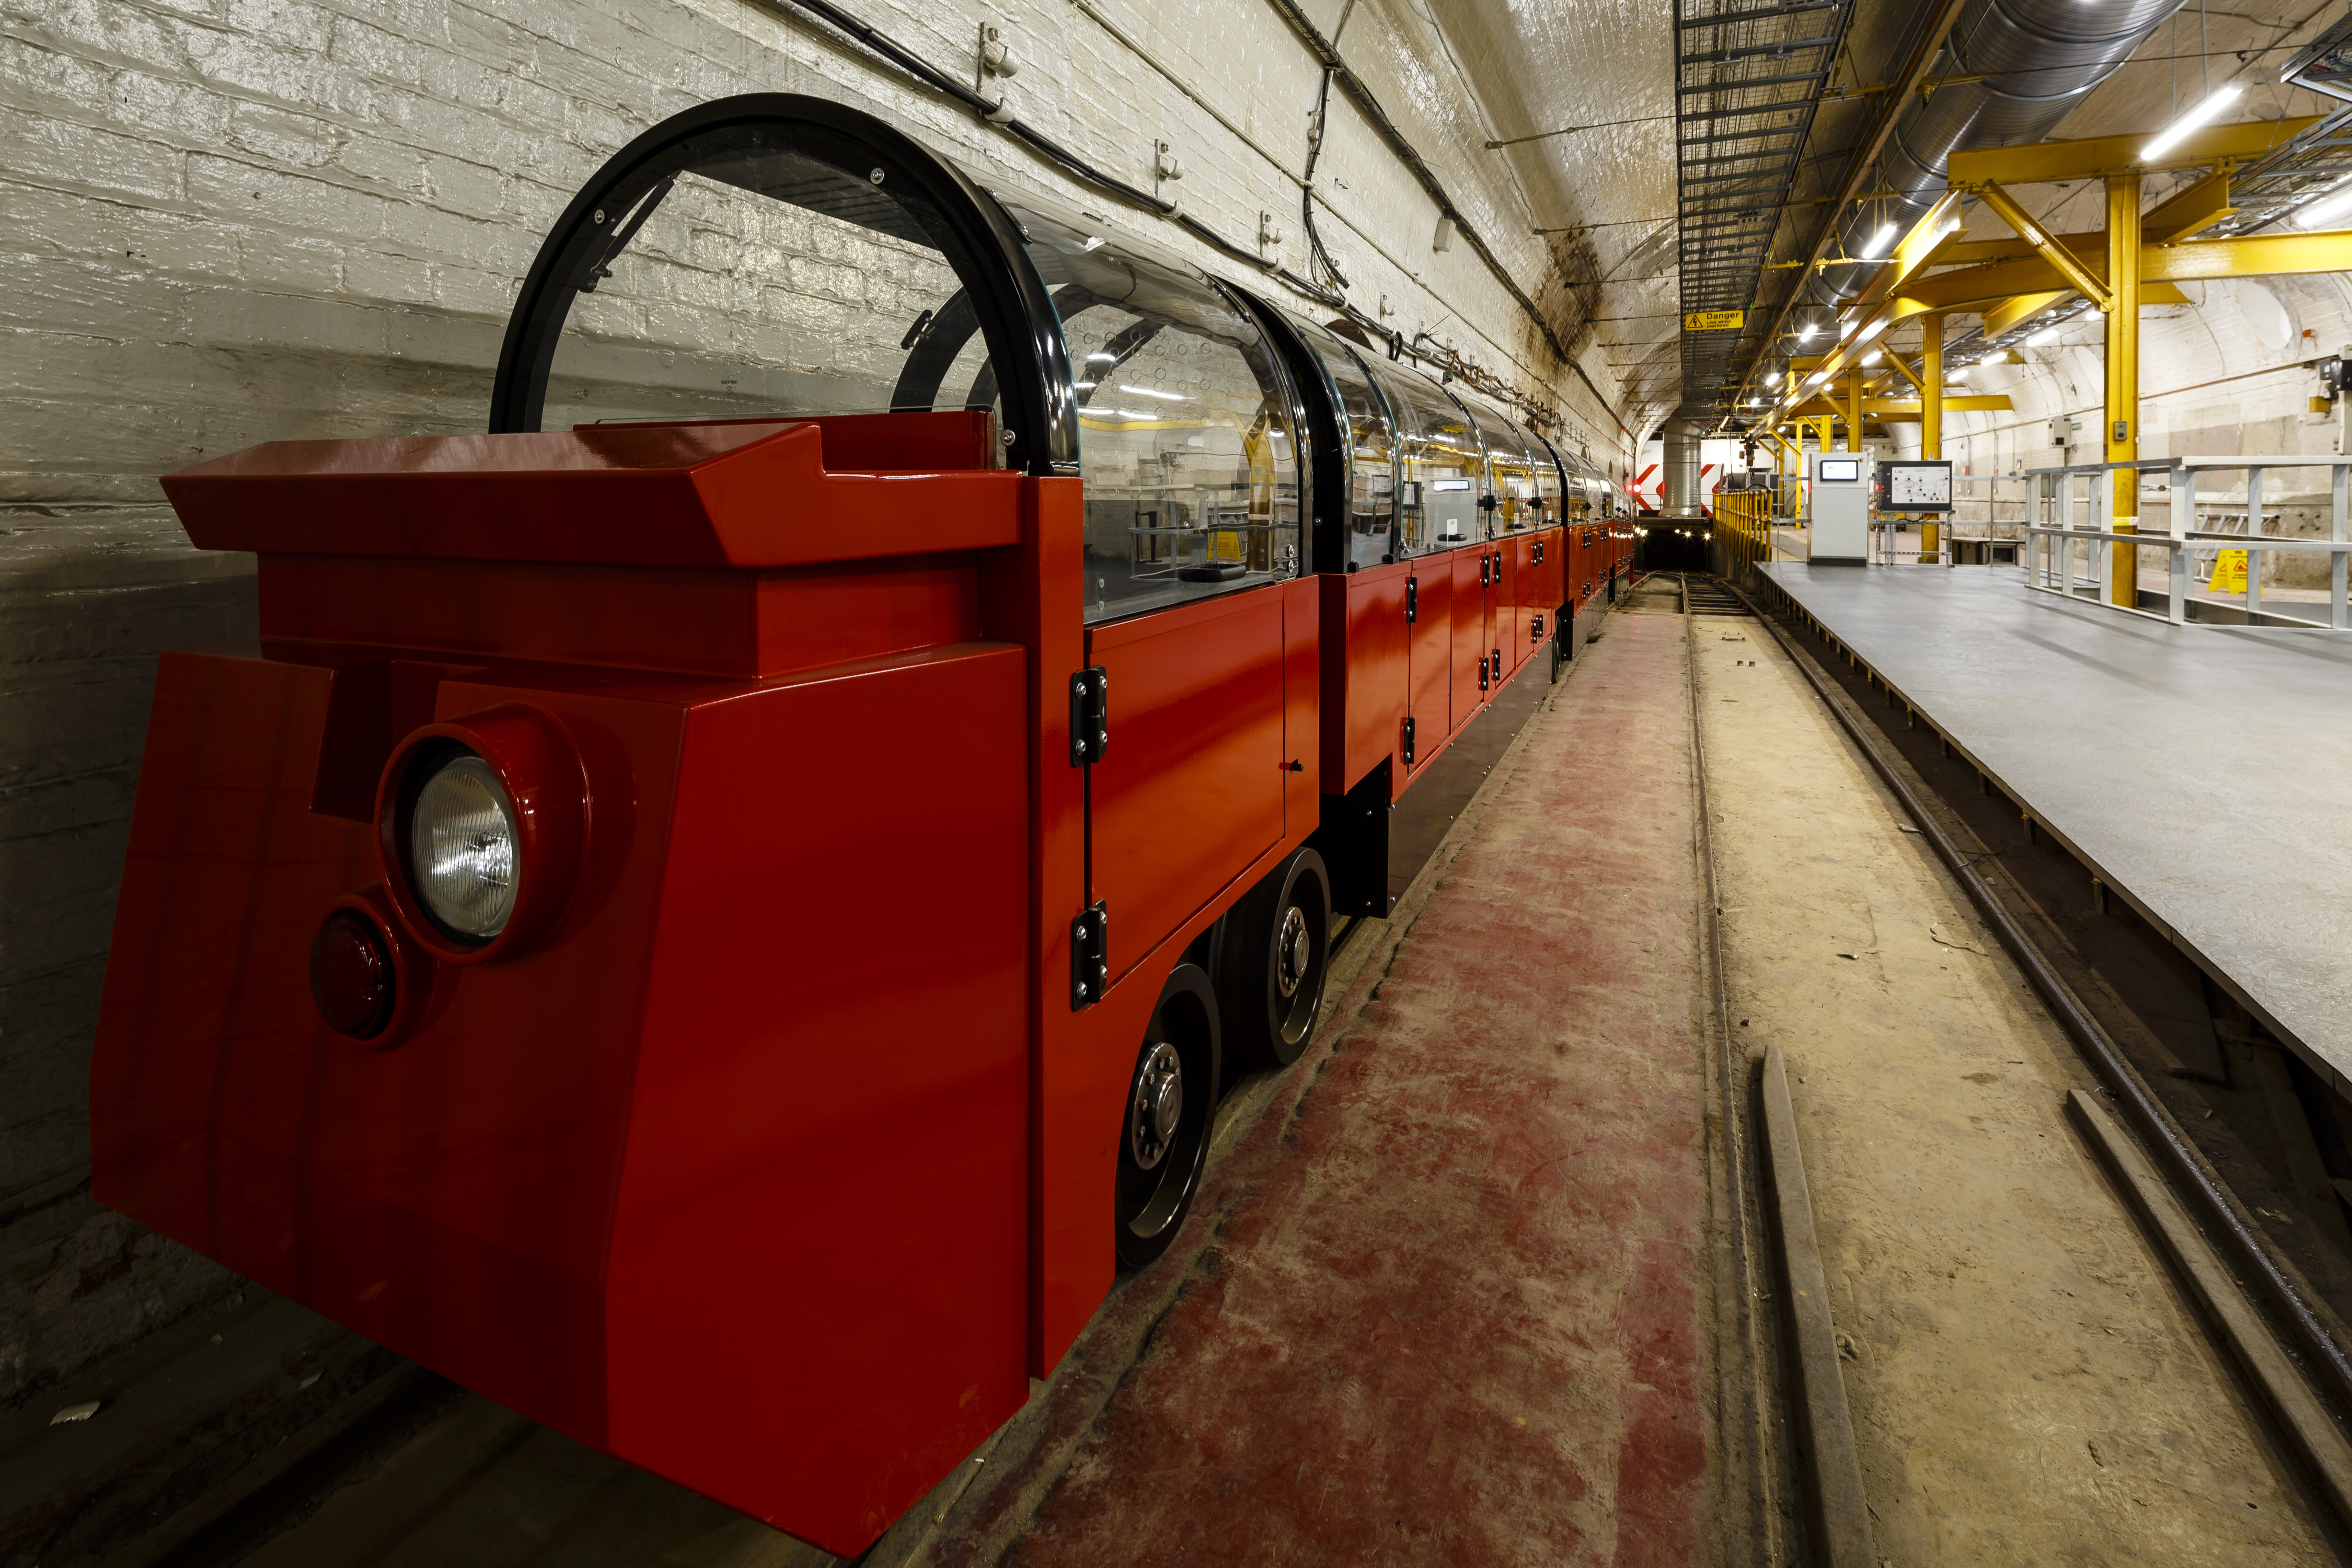 Laura's London: Exploring London's Newest Museum – The Secret Mail Rail and The Postal Museum